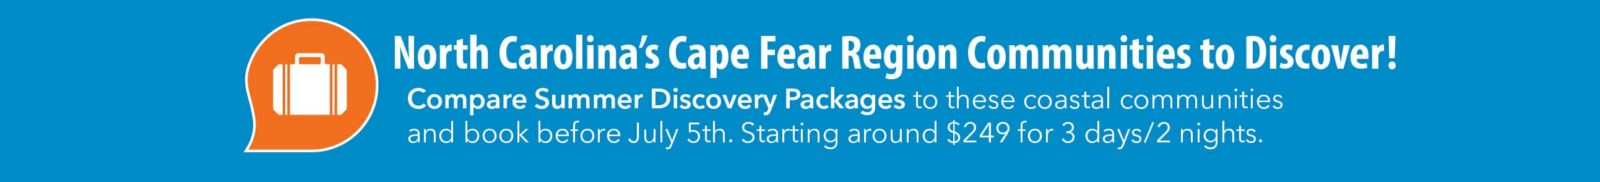 Compare Summer Discovery Packages